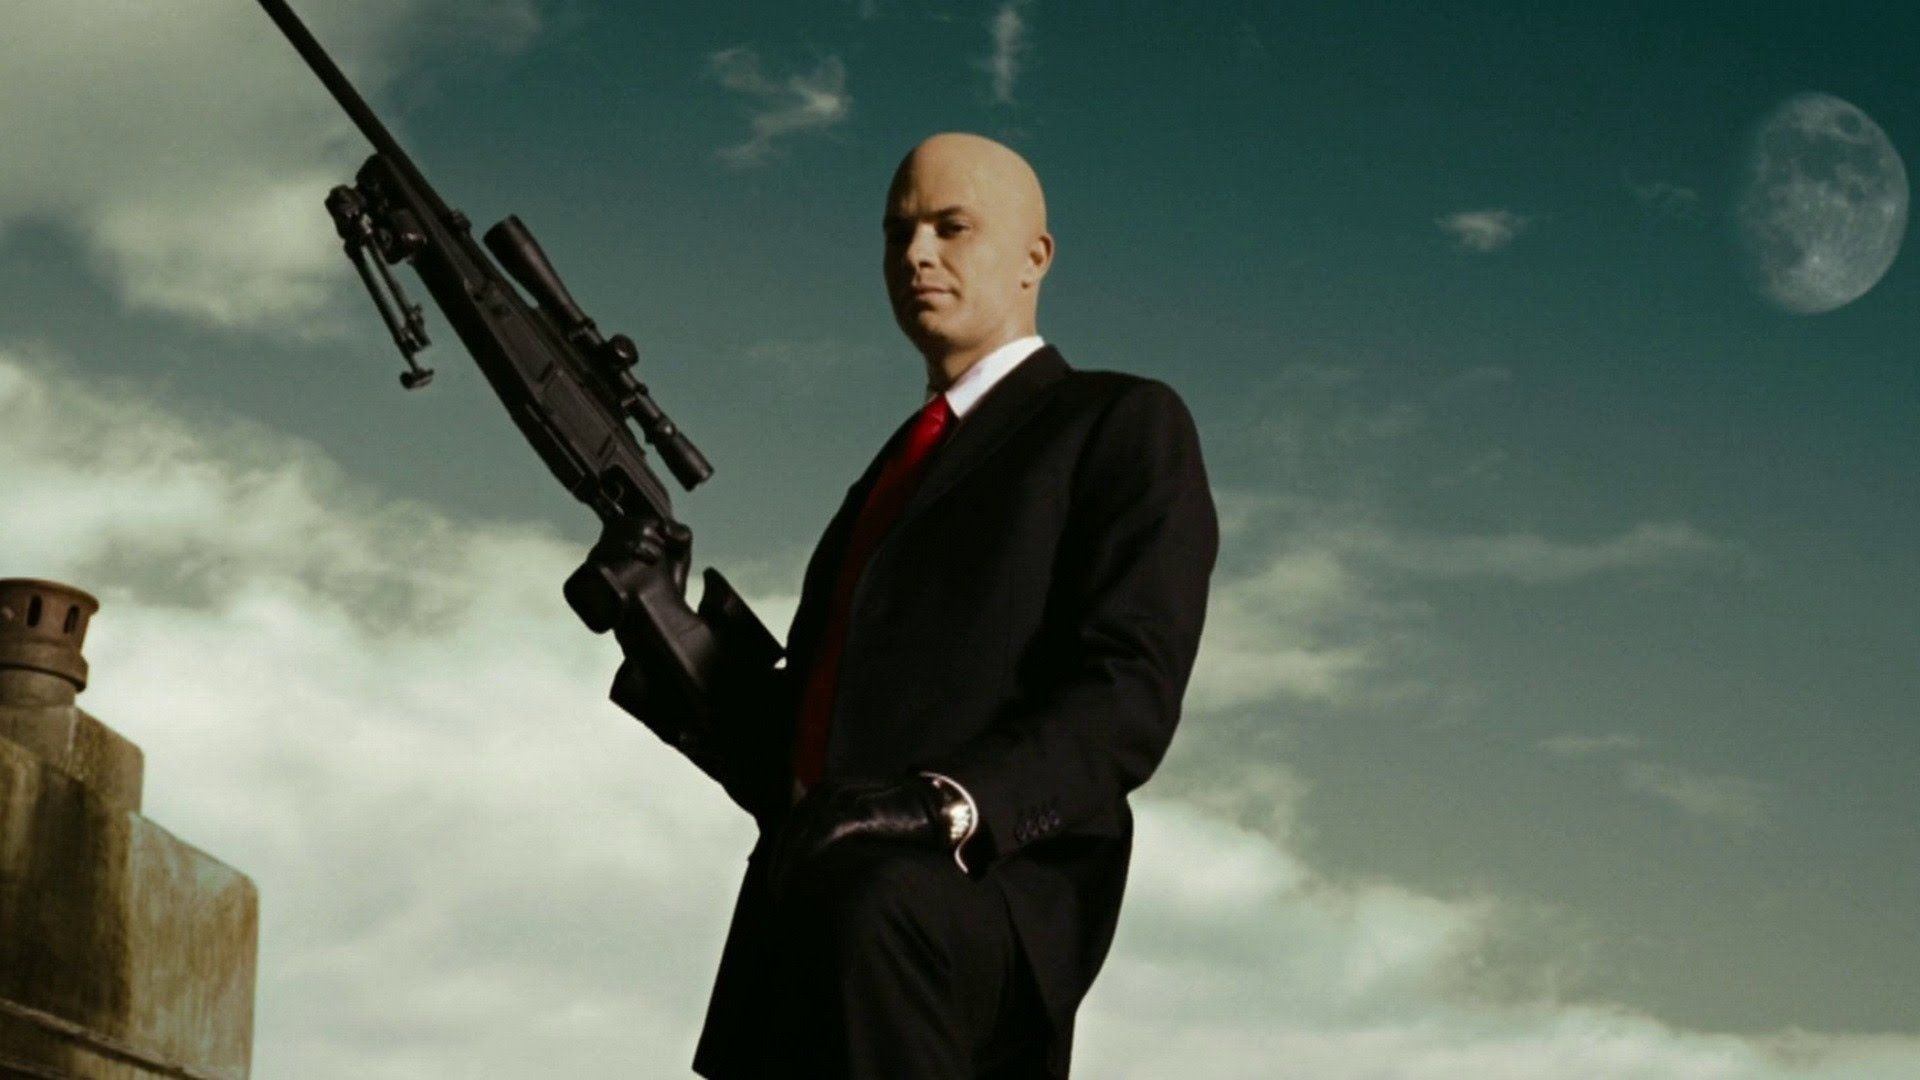 Hitman 2007 Full Film Hd 1080p Timothy Olyphant Dougray Scott